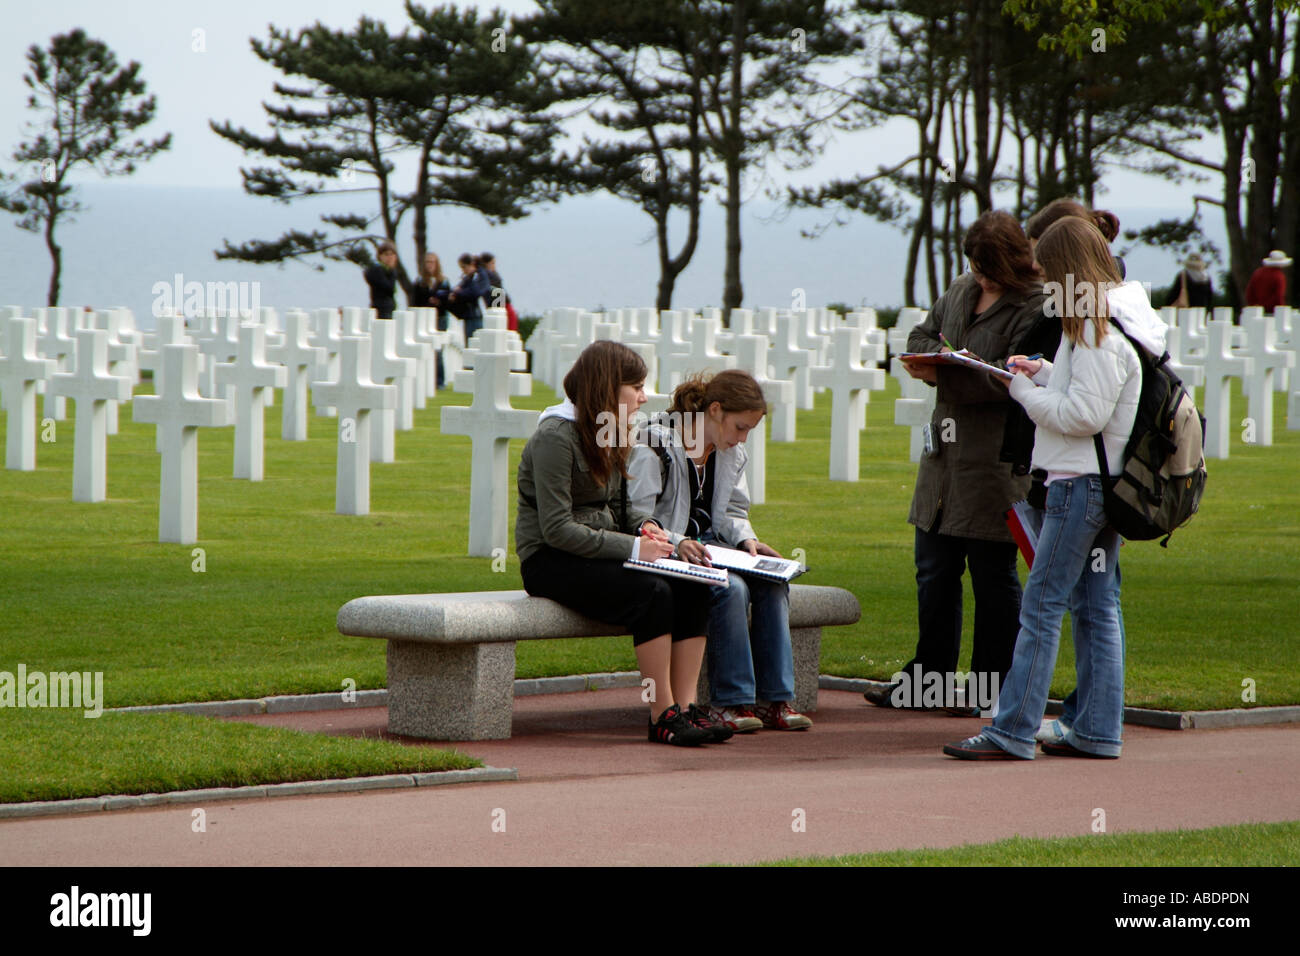 American Cemetery Normandy France School children on an educational visit - Stock Image